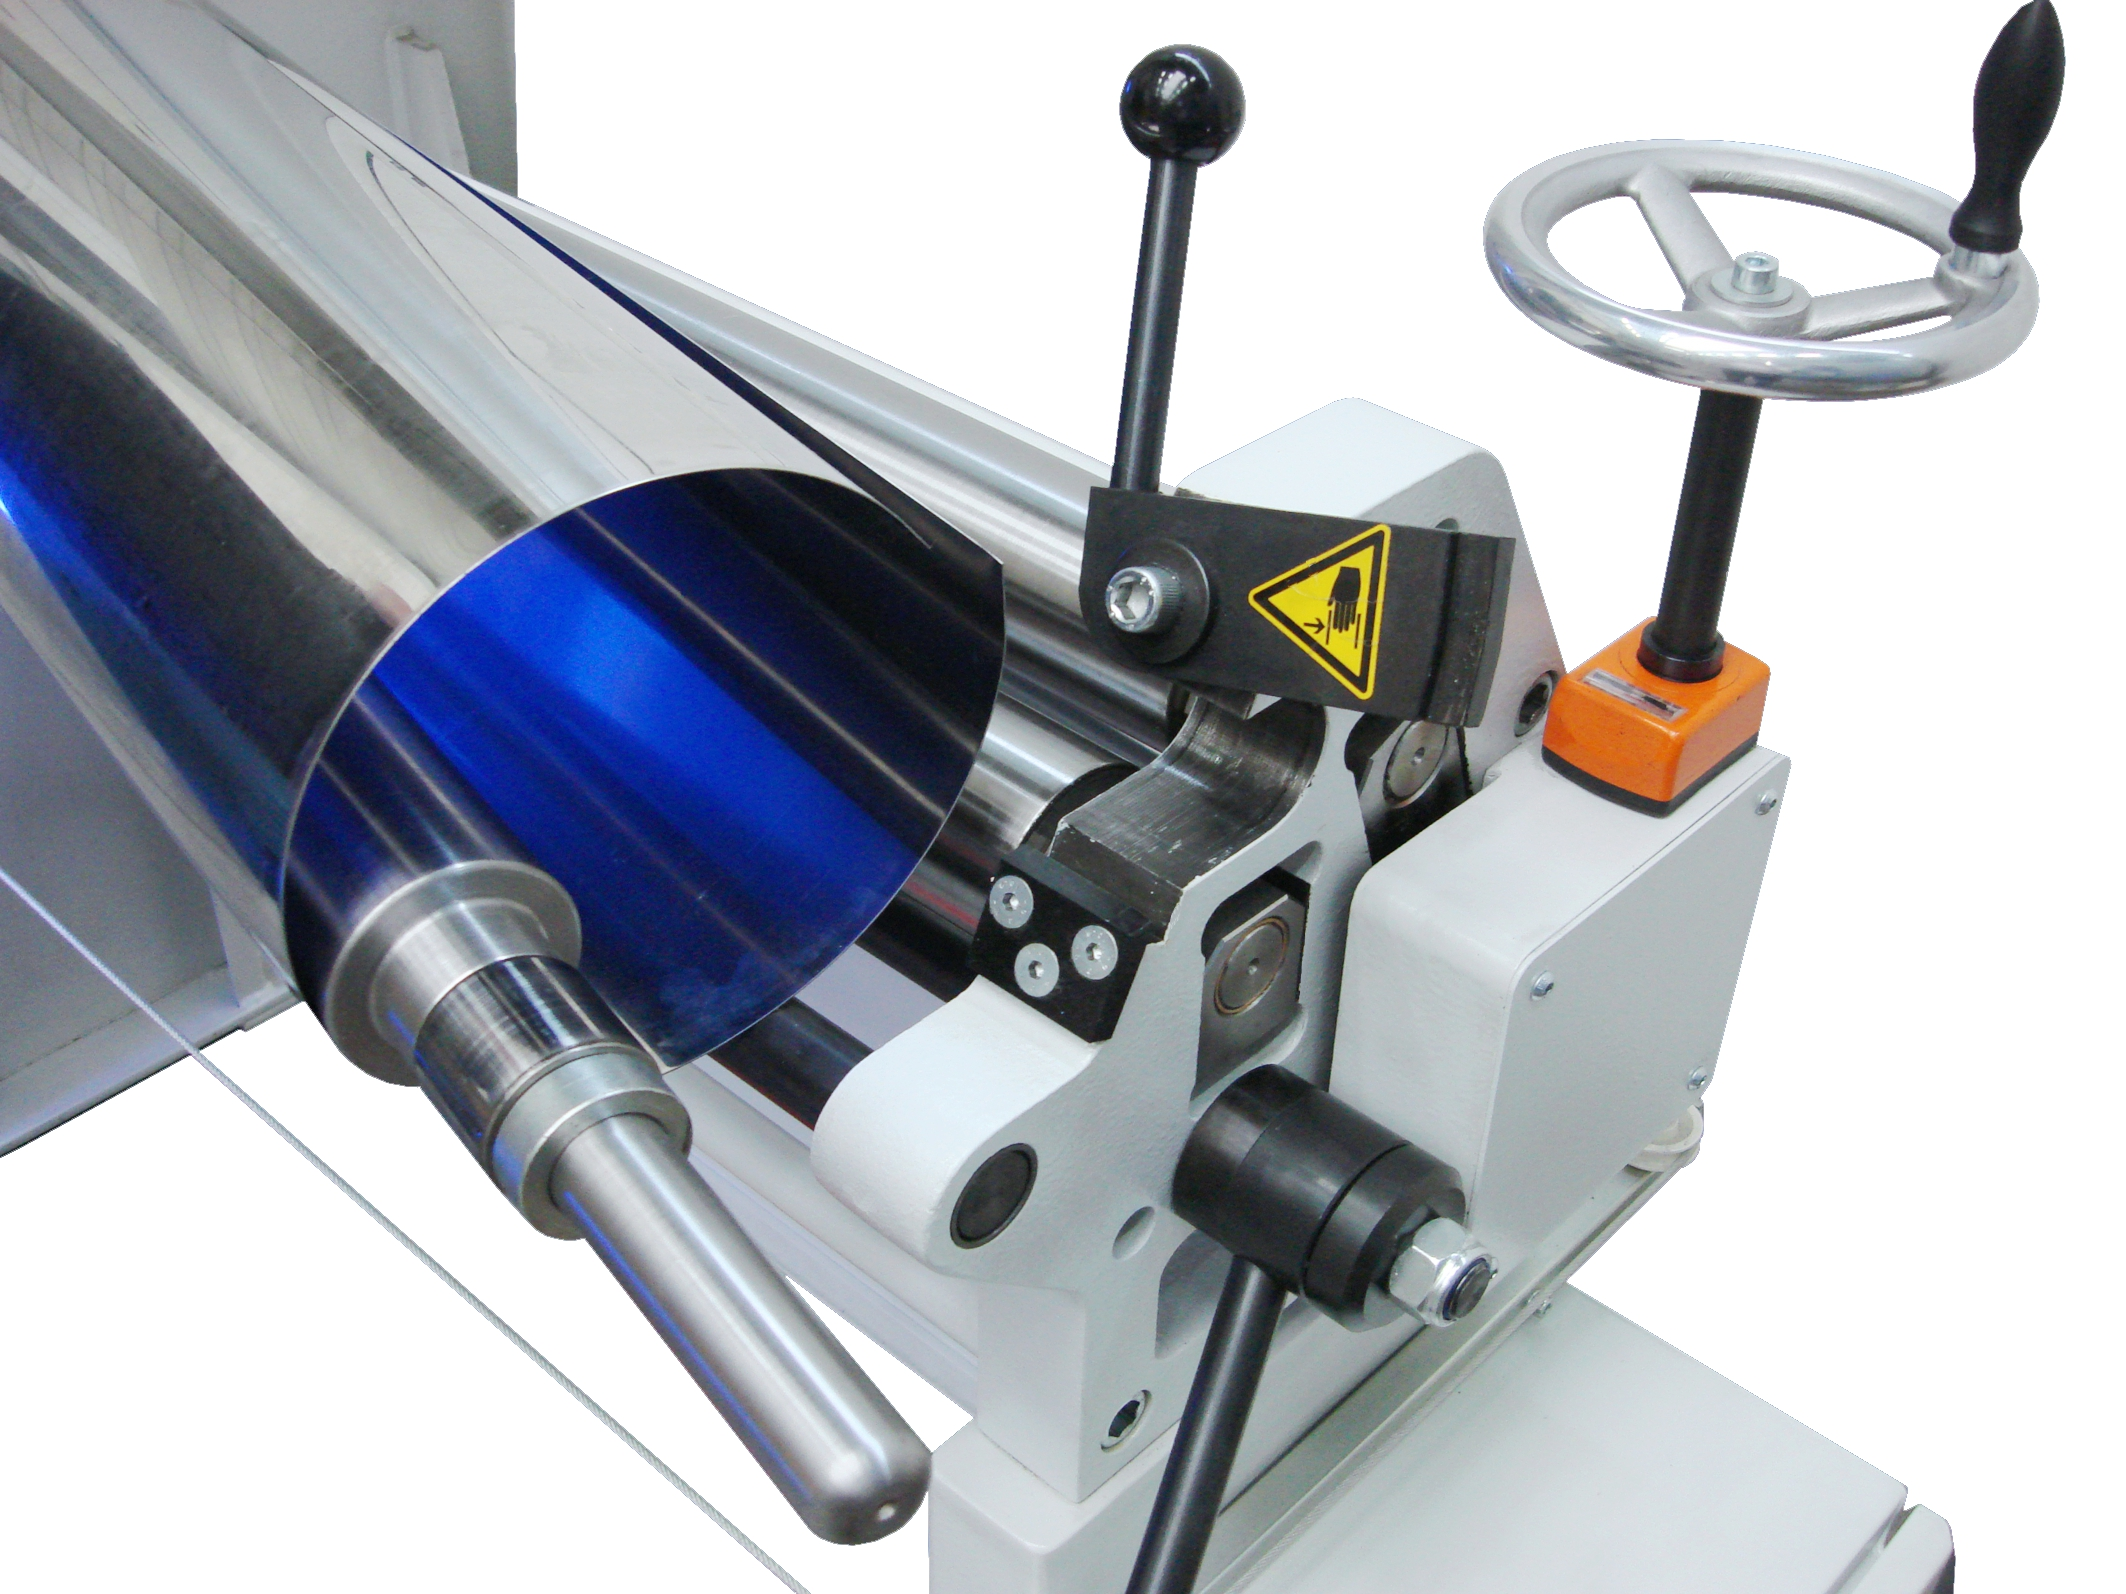 The swivel-out upper roll allows convenient removal of rounded pipes